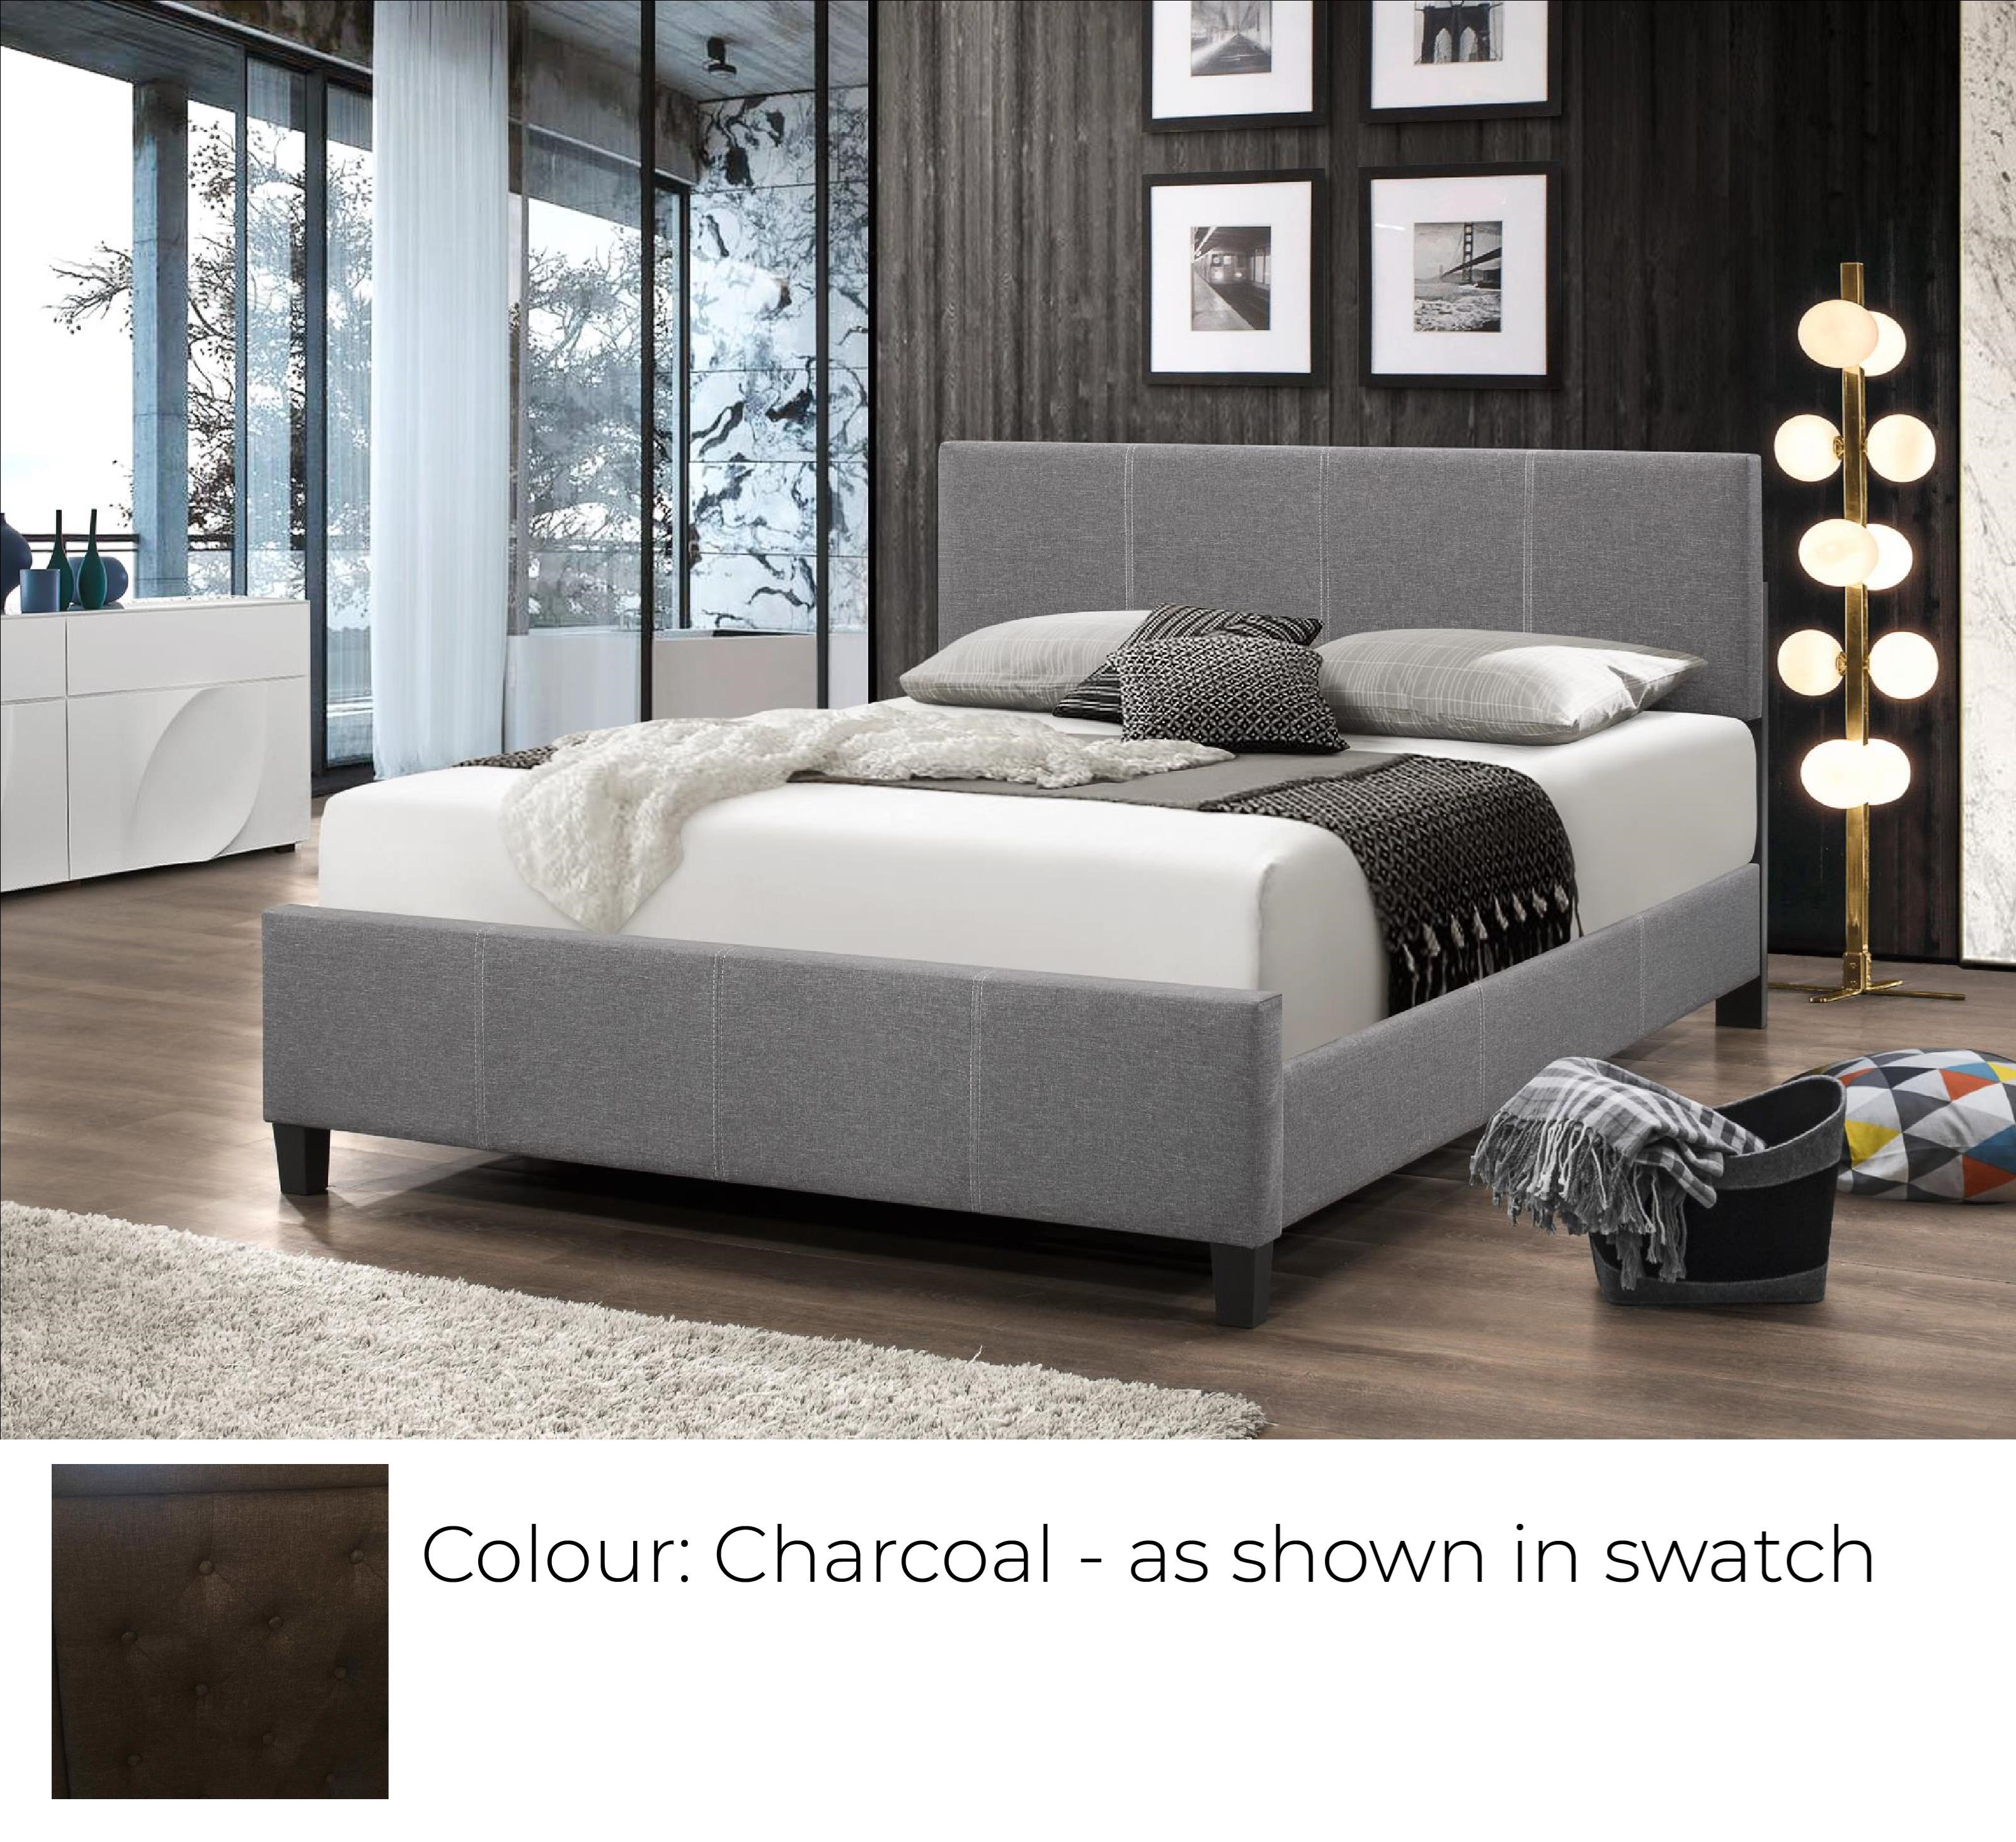 B690 - Ready to Assemble Upholstered Bed - Charcoal at Bennett's Furniture and Mattresses